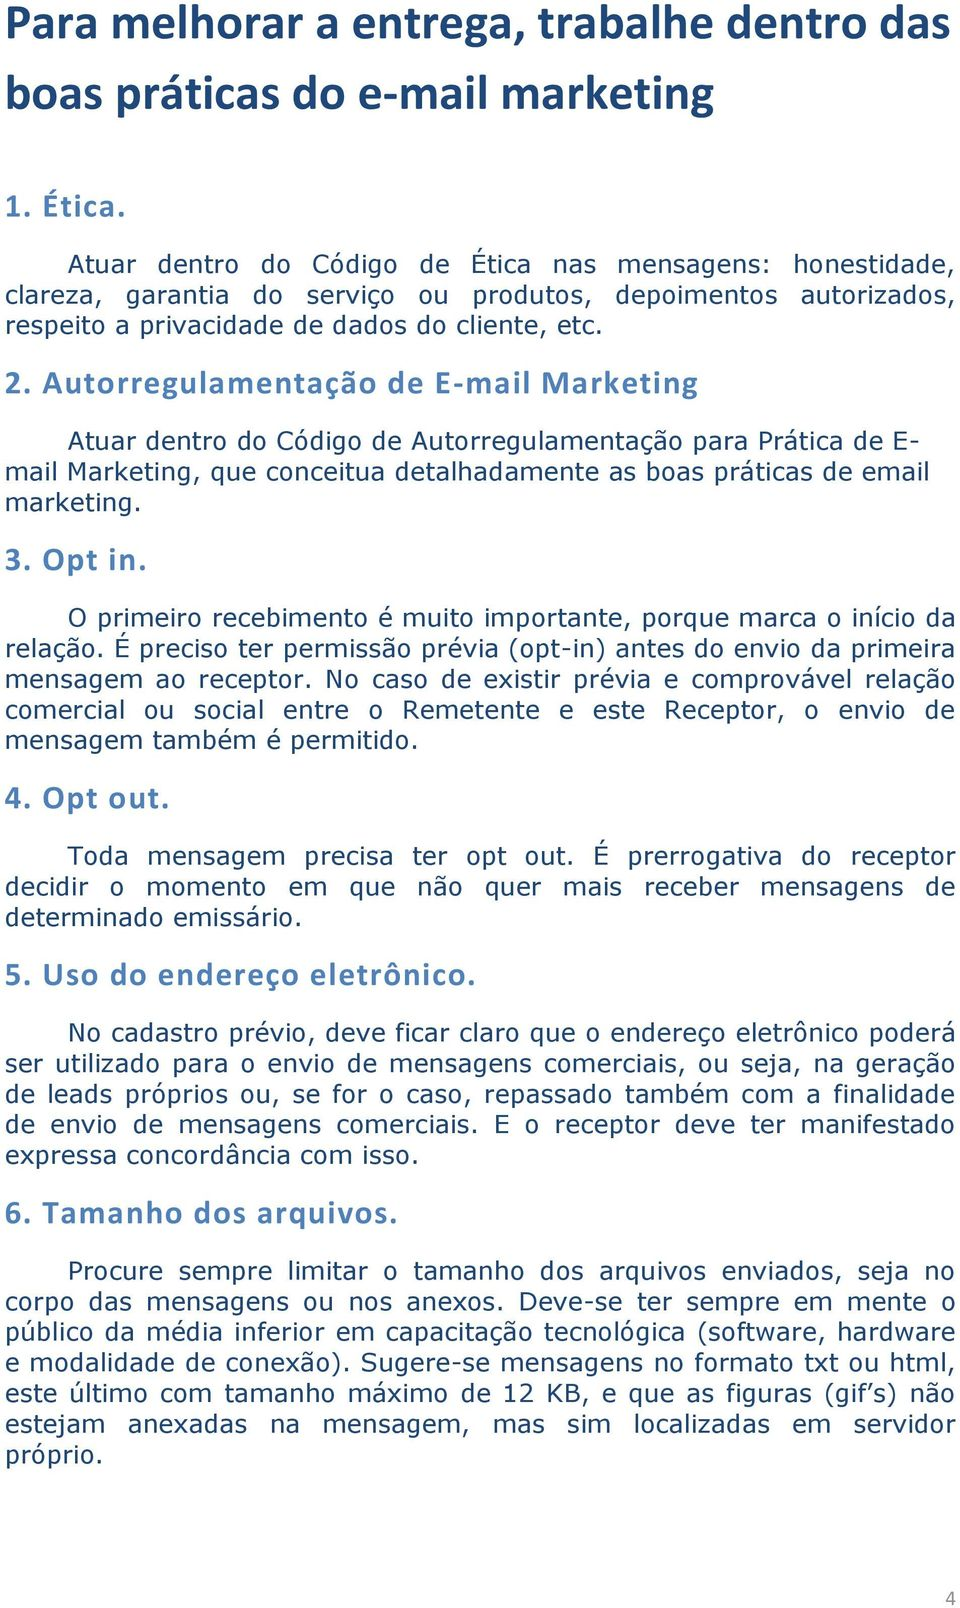 Autorregulamentação de E-mail Marketing Atuar dentro do Código de Autorregulamentação para Prática de E- mail Marketing, que conceitua detalhadamente as boas práticas de email marketing. 3. Opt in.